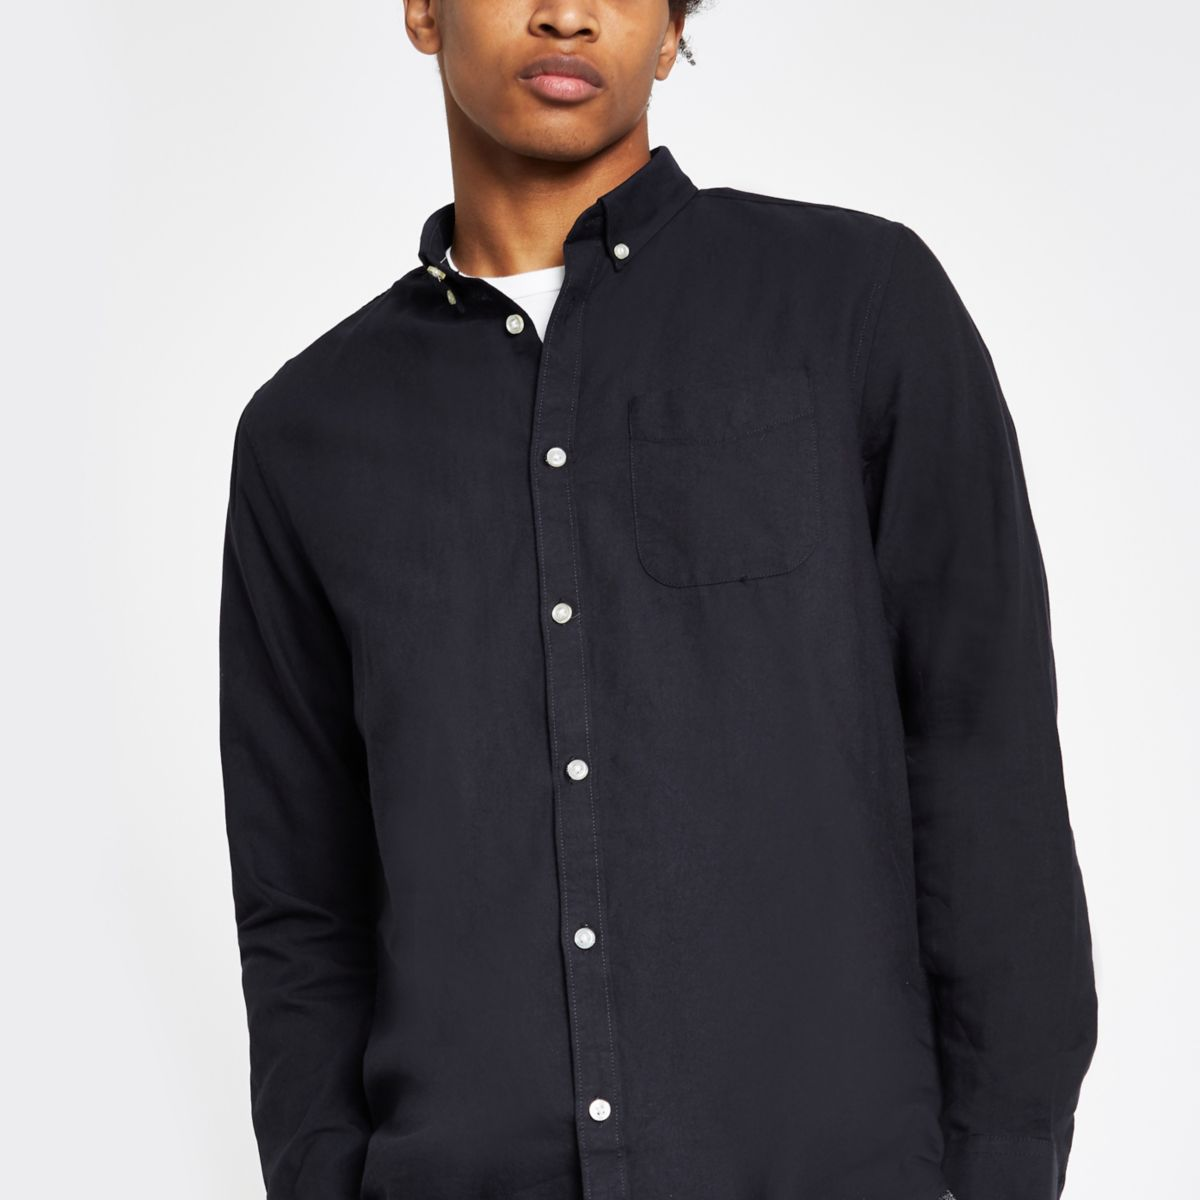 Navy long sleeve Oxford shirt